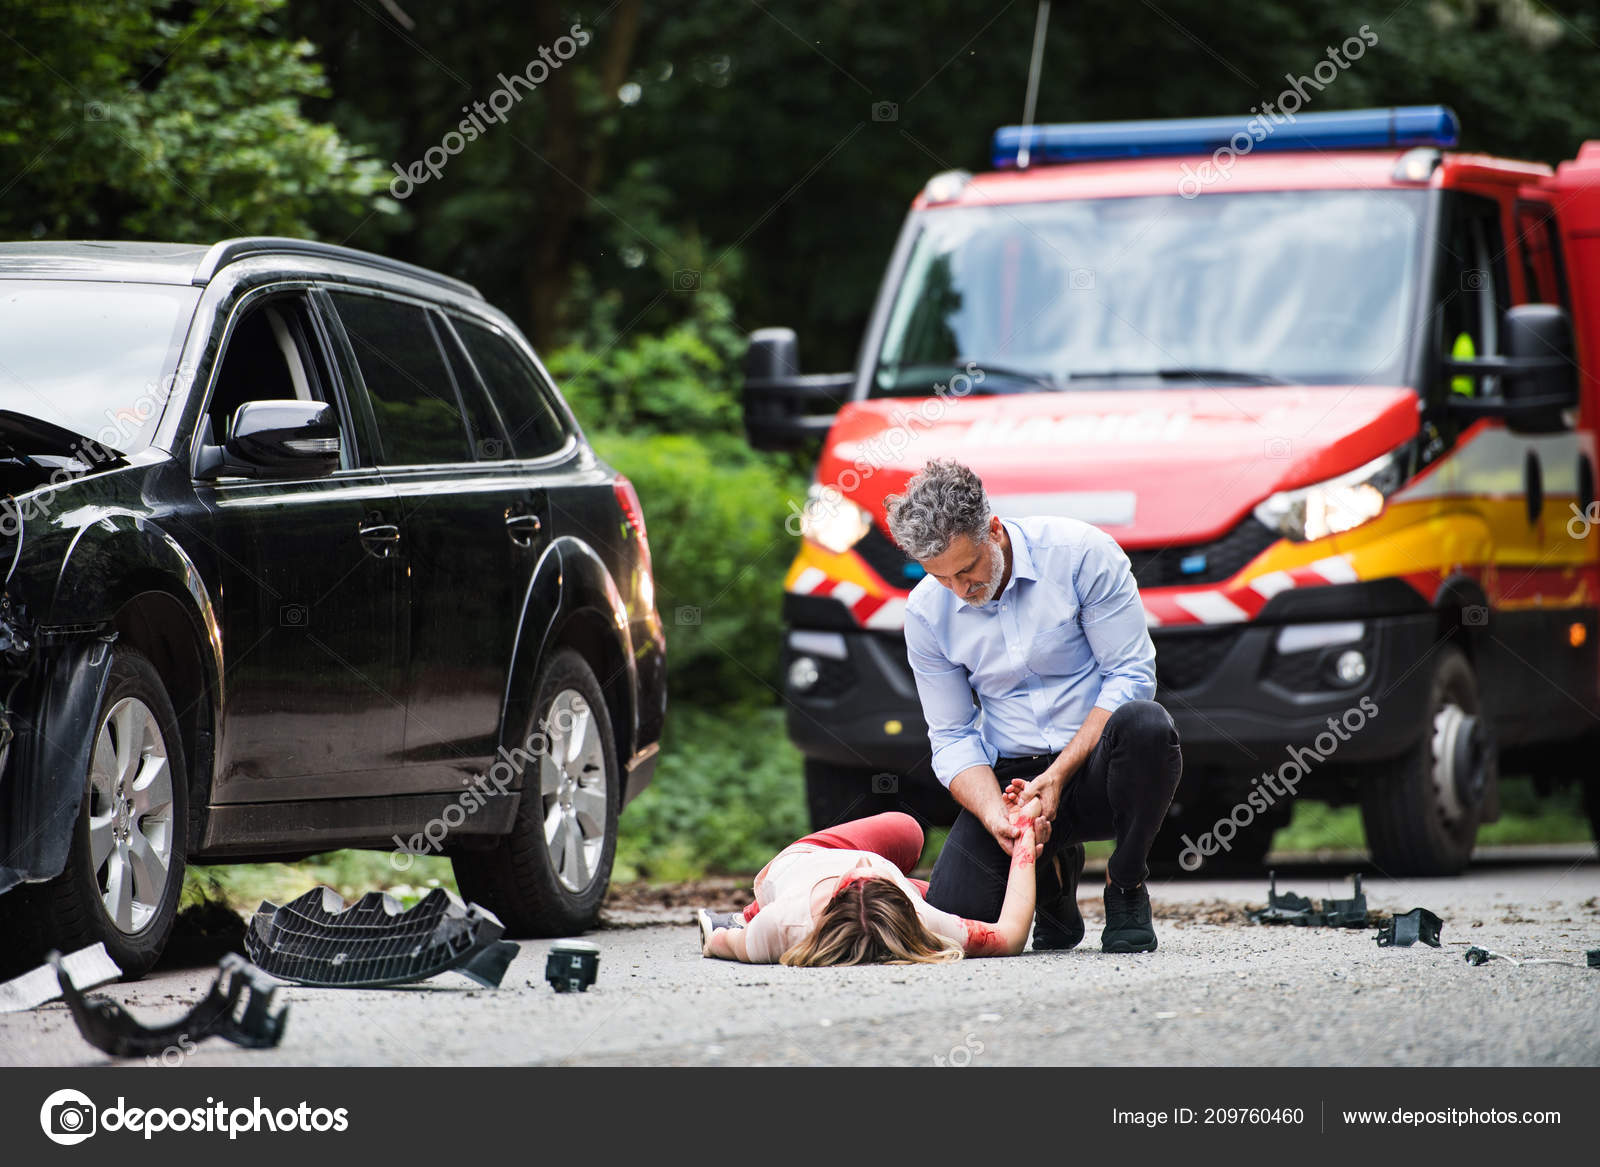 A man helping a young woman lying unconscious on the road